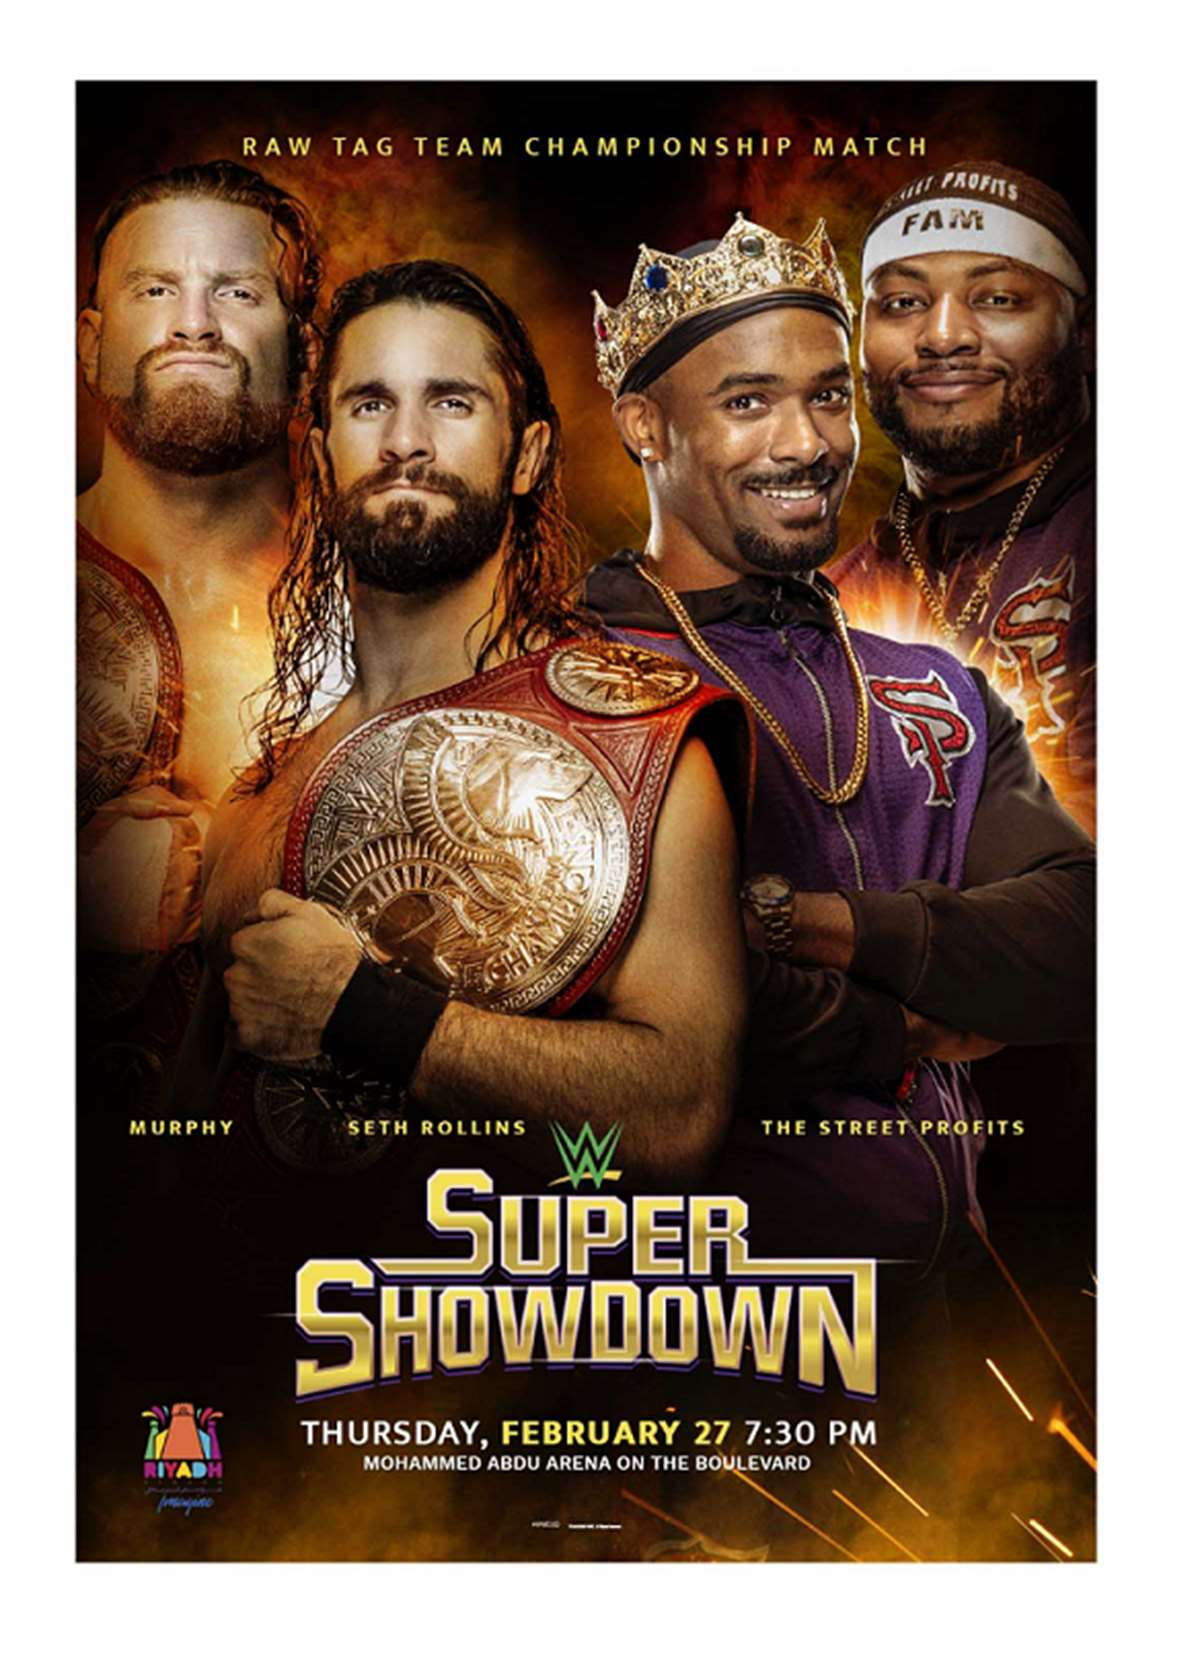 Cartel promocional Super ShowDown 2020 (WWE)